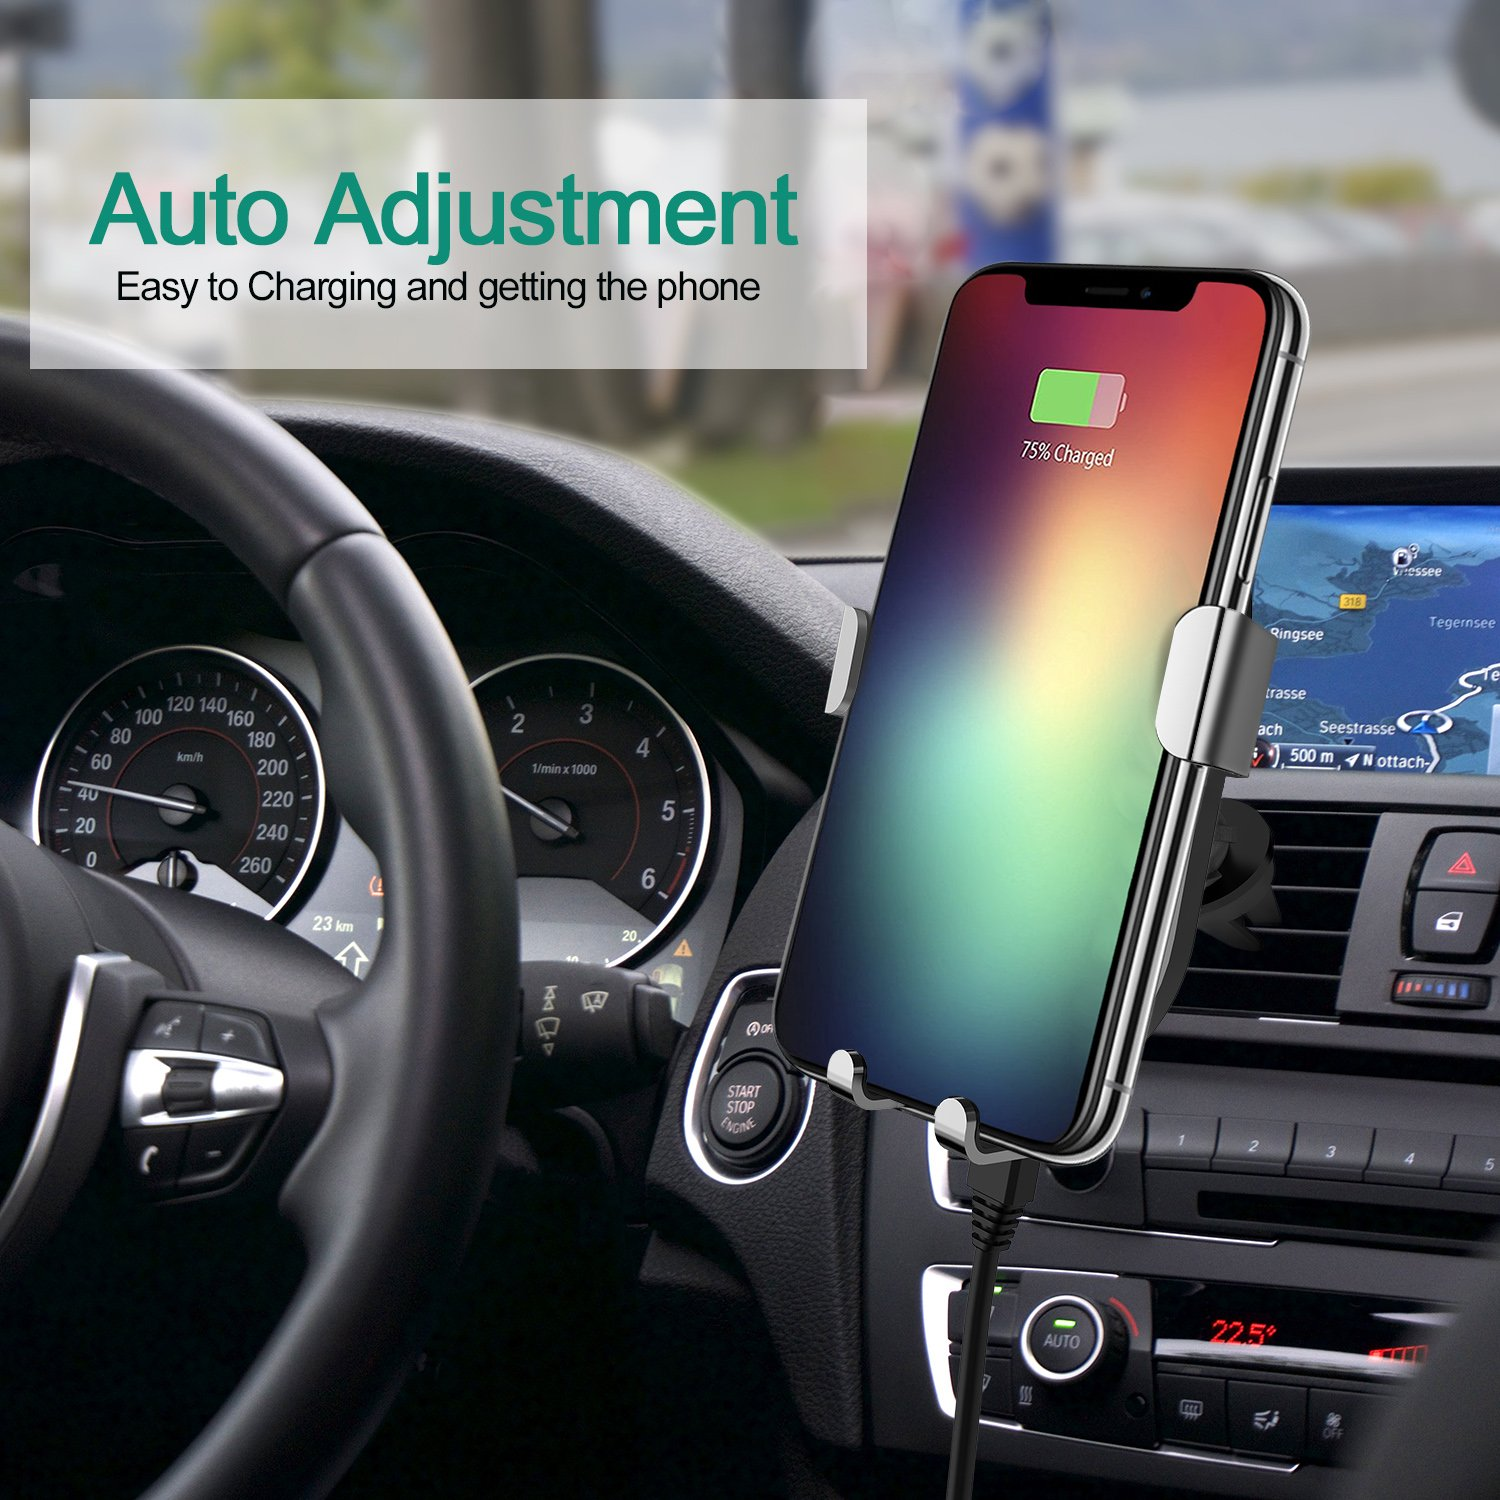 Wireless Car Charger, Esolom Fast Wireless Charging Mount Air Vent Gravity  Phone Holder Cradle Quick Charge 3 0 for iPhone X/8 Plus/8 Android Samsung